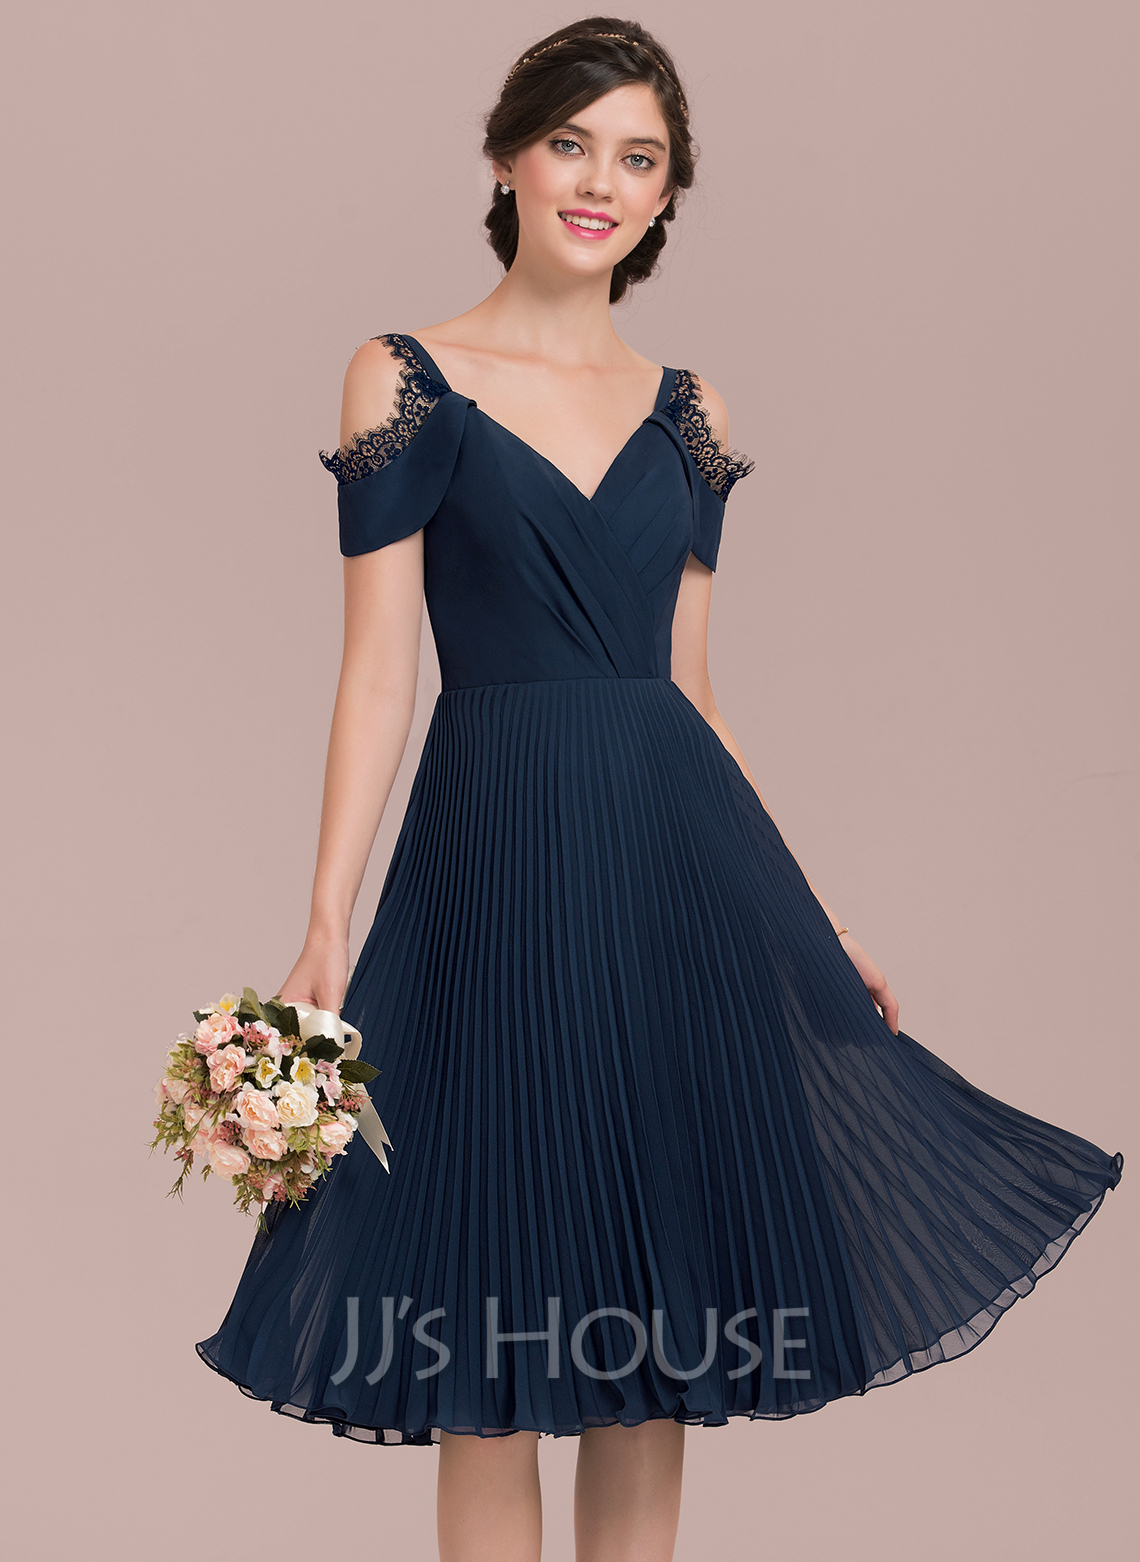 7544b7fa9880 A-Line/Princess V-neck Knee-Length Chiffon Bridesmaid Dress With Lace.  Loading zoom